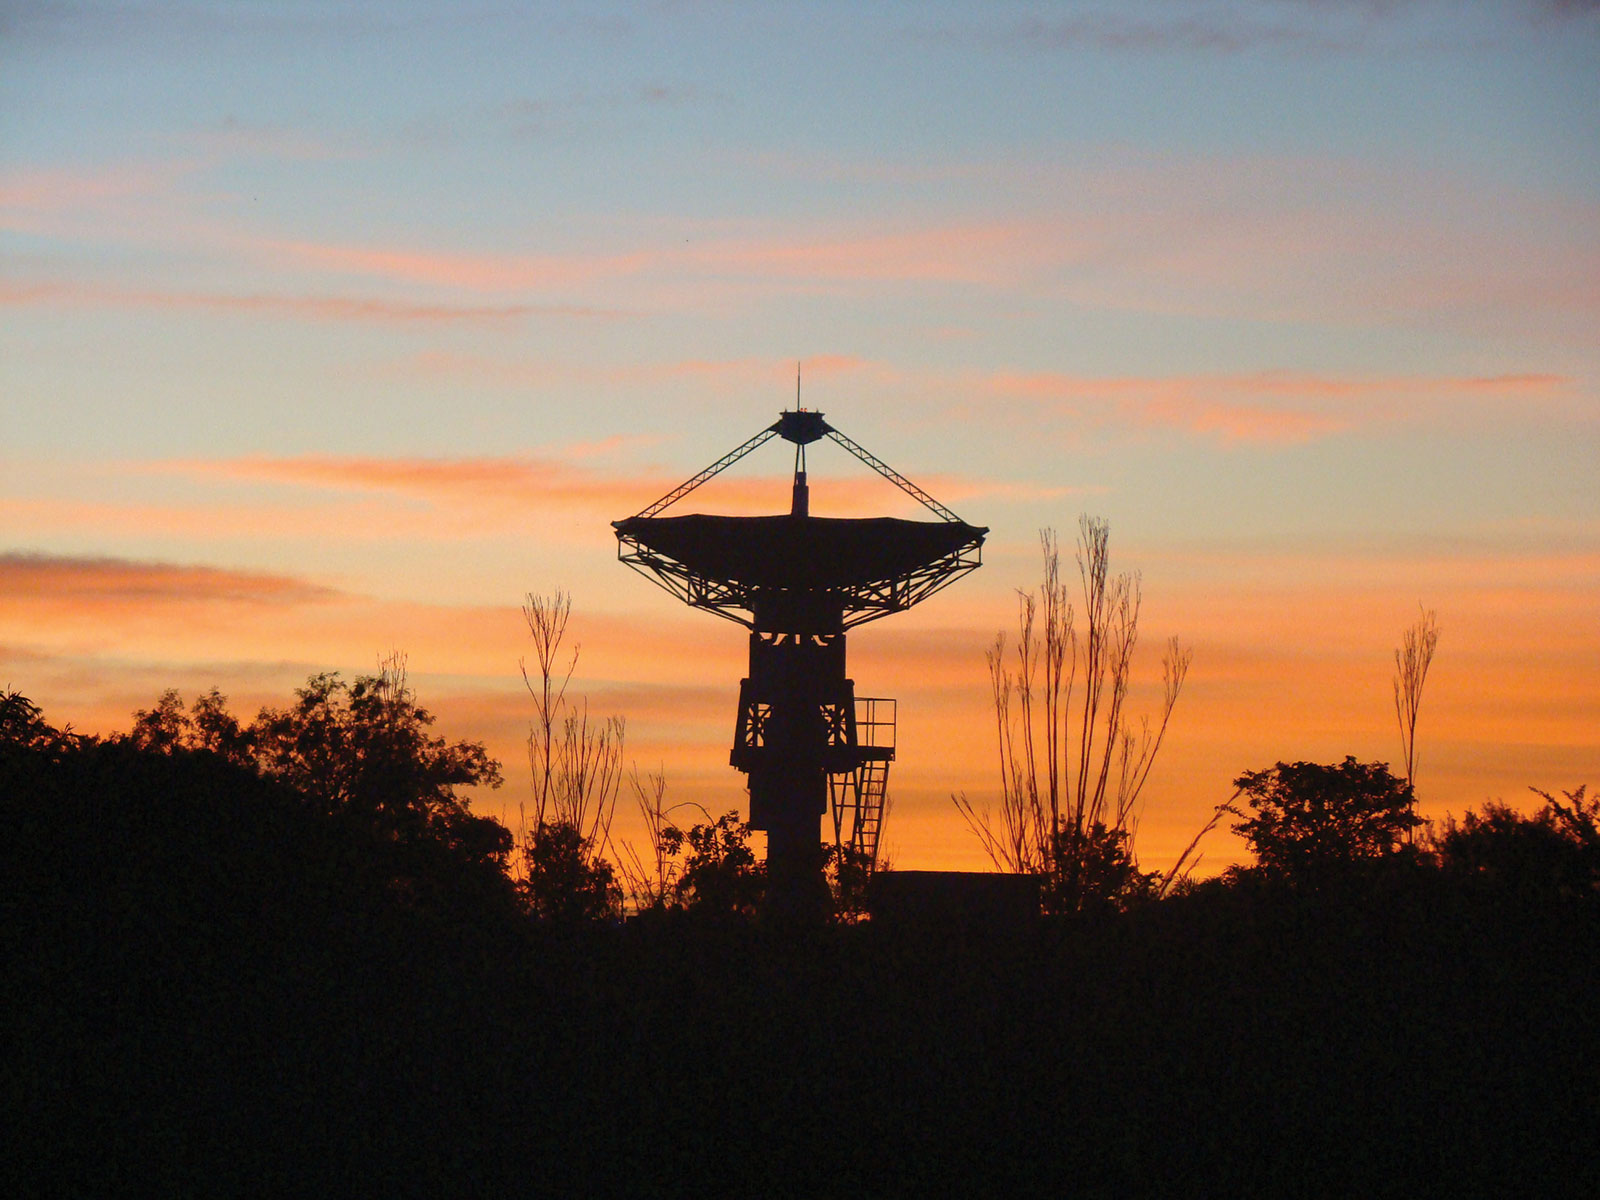 Satellite on a sunset